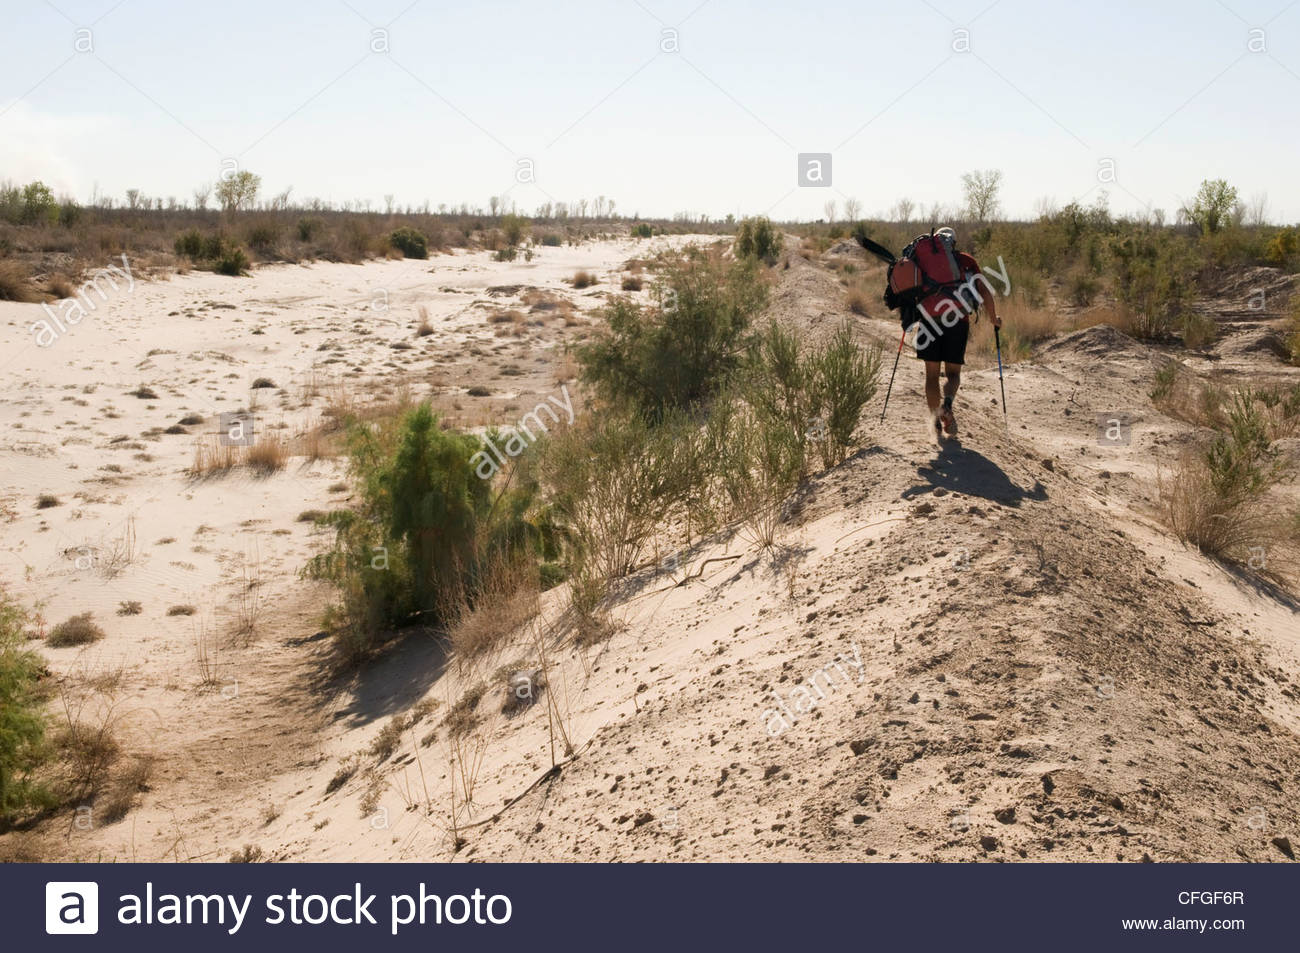 A man walks with a packraft across the dry Colorado River ...